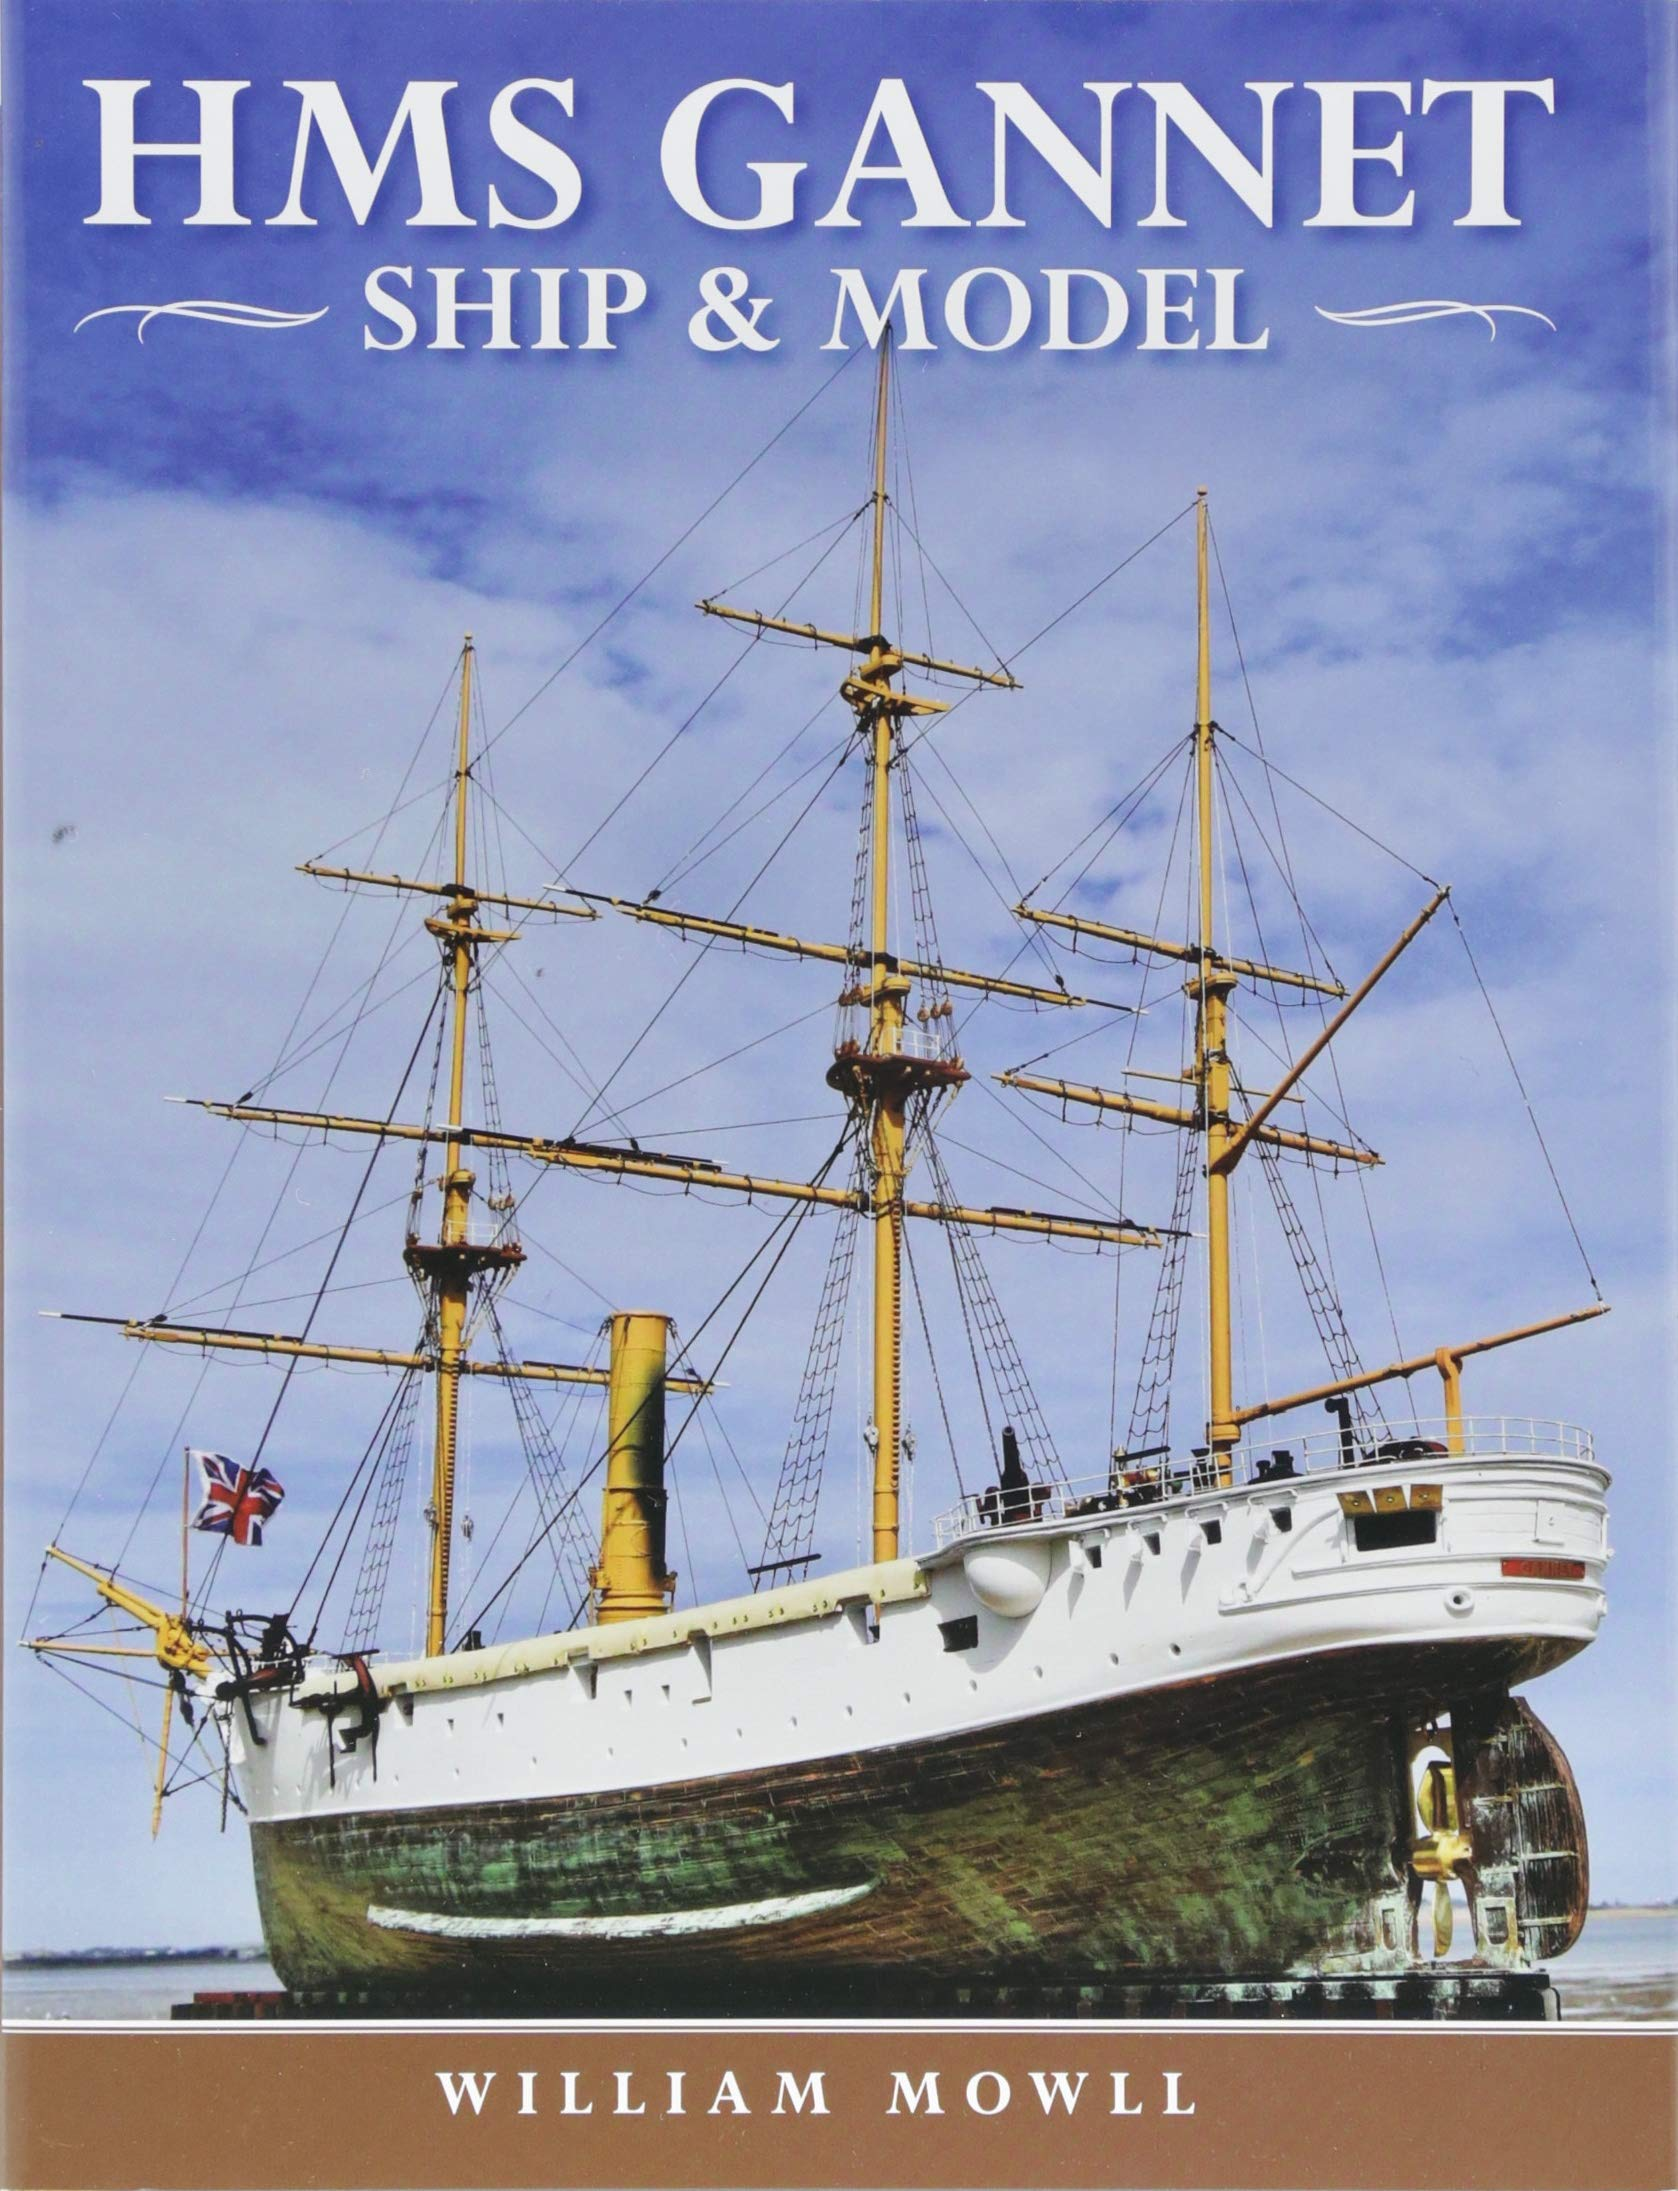 Hms Gannet Ship And Model William Mowll 9781526726285 Sailing Diagram Tall Ships Pinterest Books